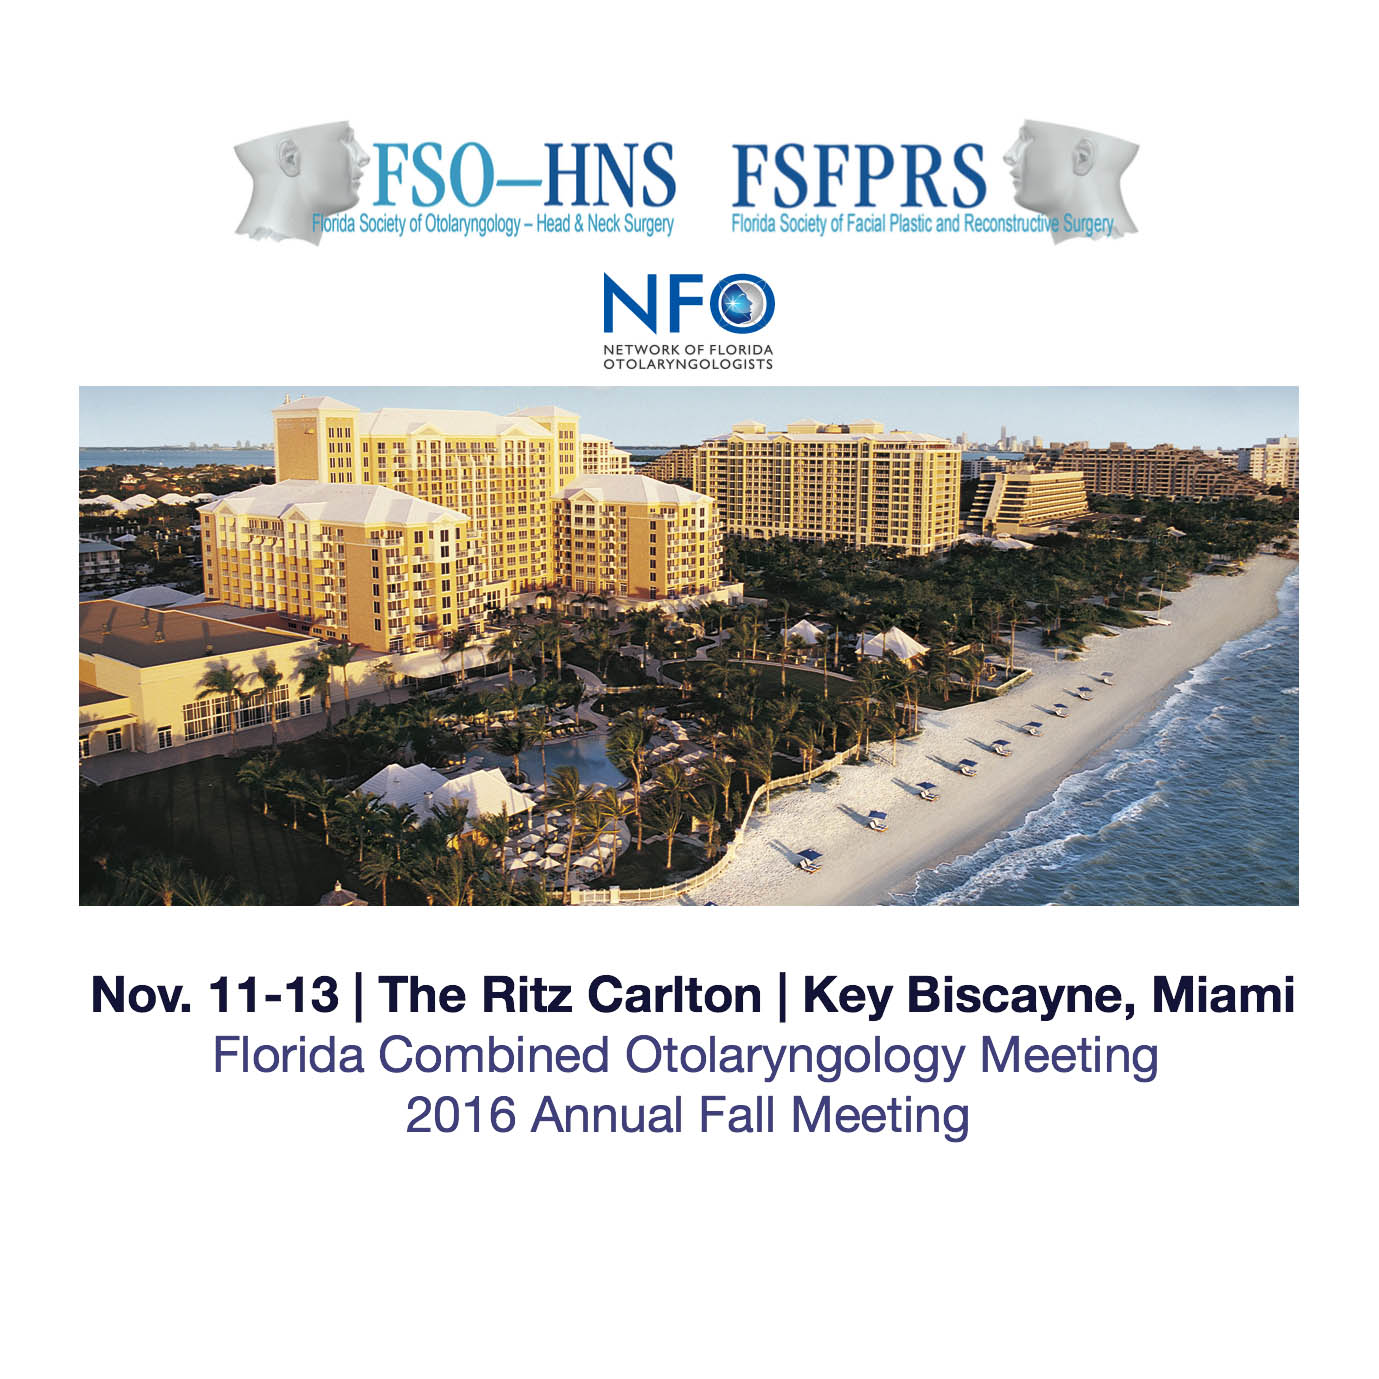 Nov. 11-13 | The Ritz Carlton | Key Biscayne, Miami